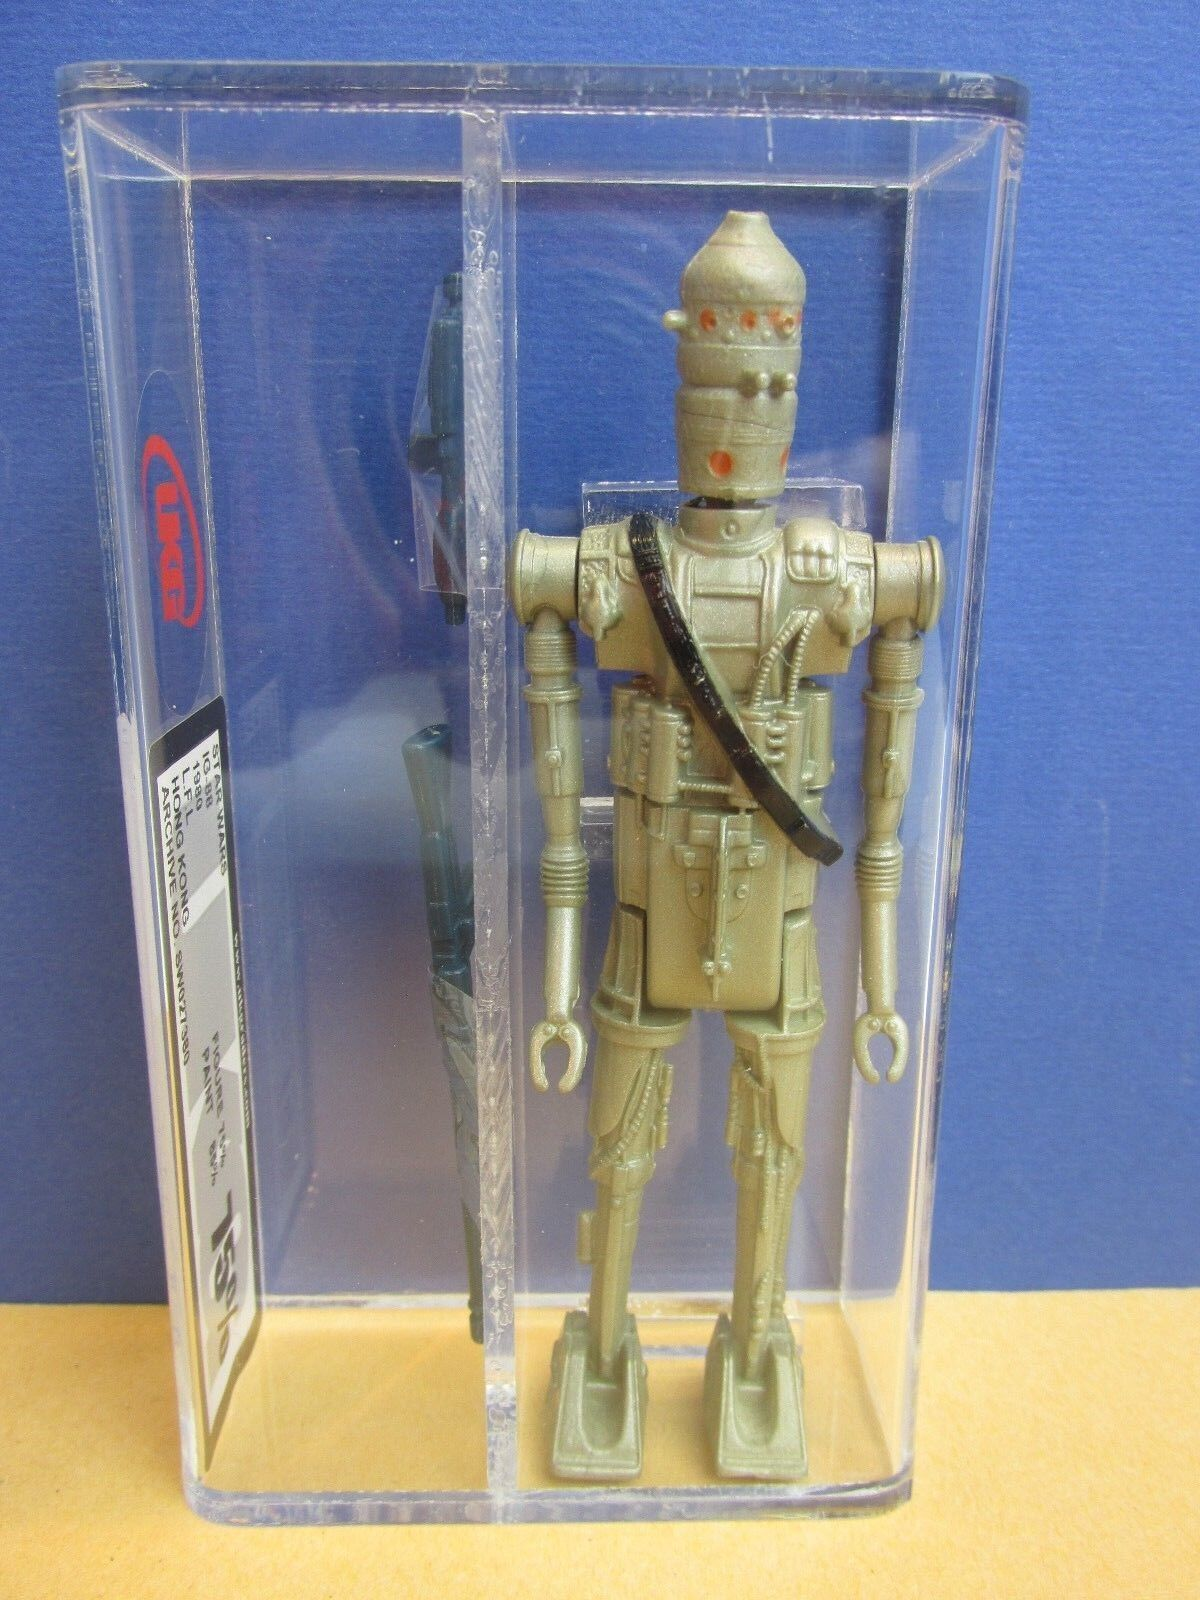 Vintage star wars IG-88 bounty hunter DROID ACTION ACTION ACTION FIGURE esb UKG not AFA kenner 96e1ac